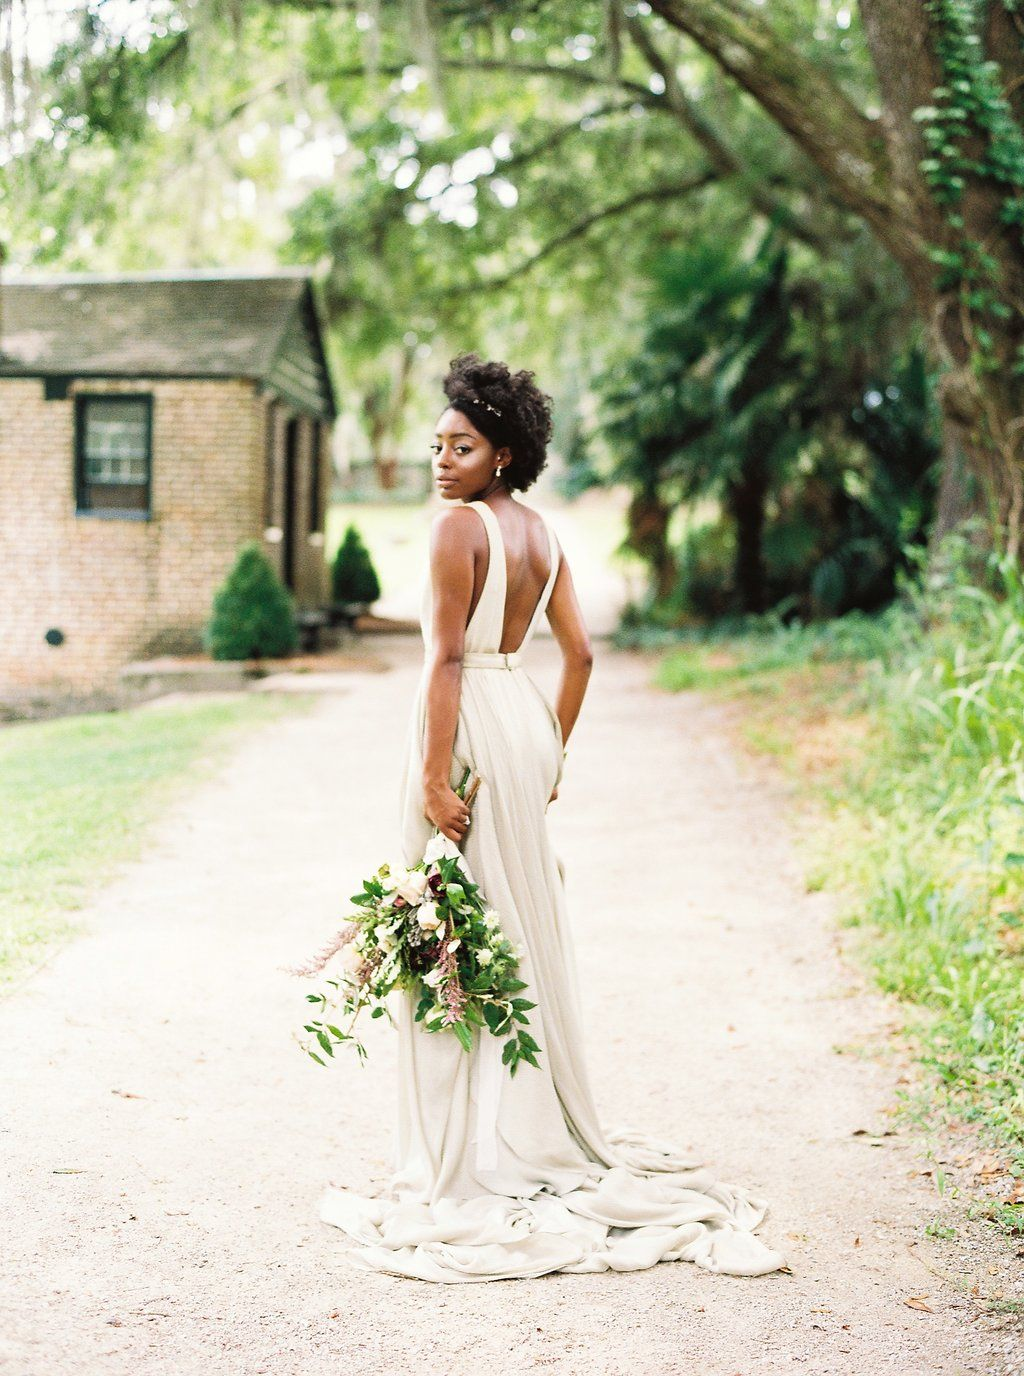 Tsos charleston bridal sessions by perry vaile black bride